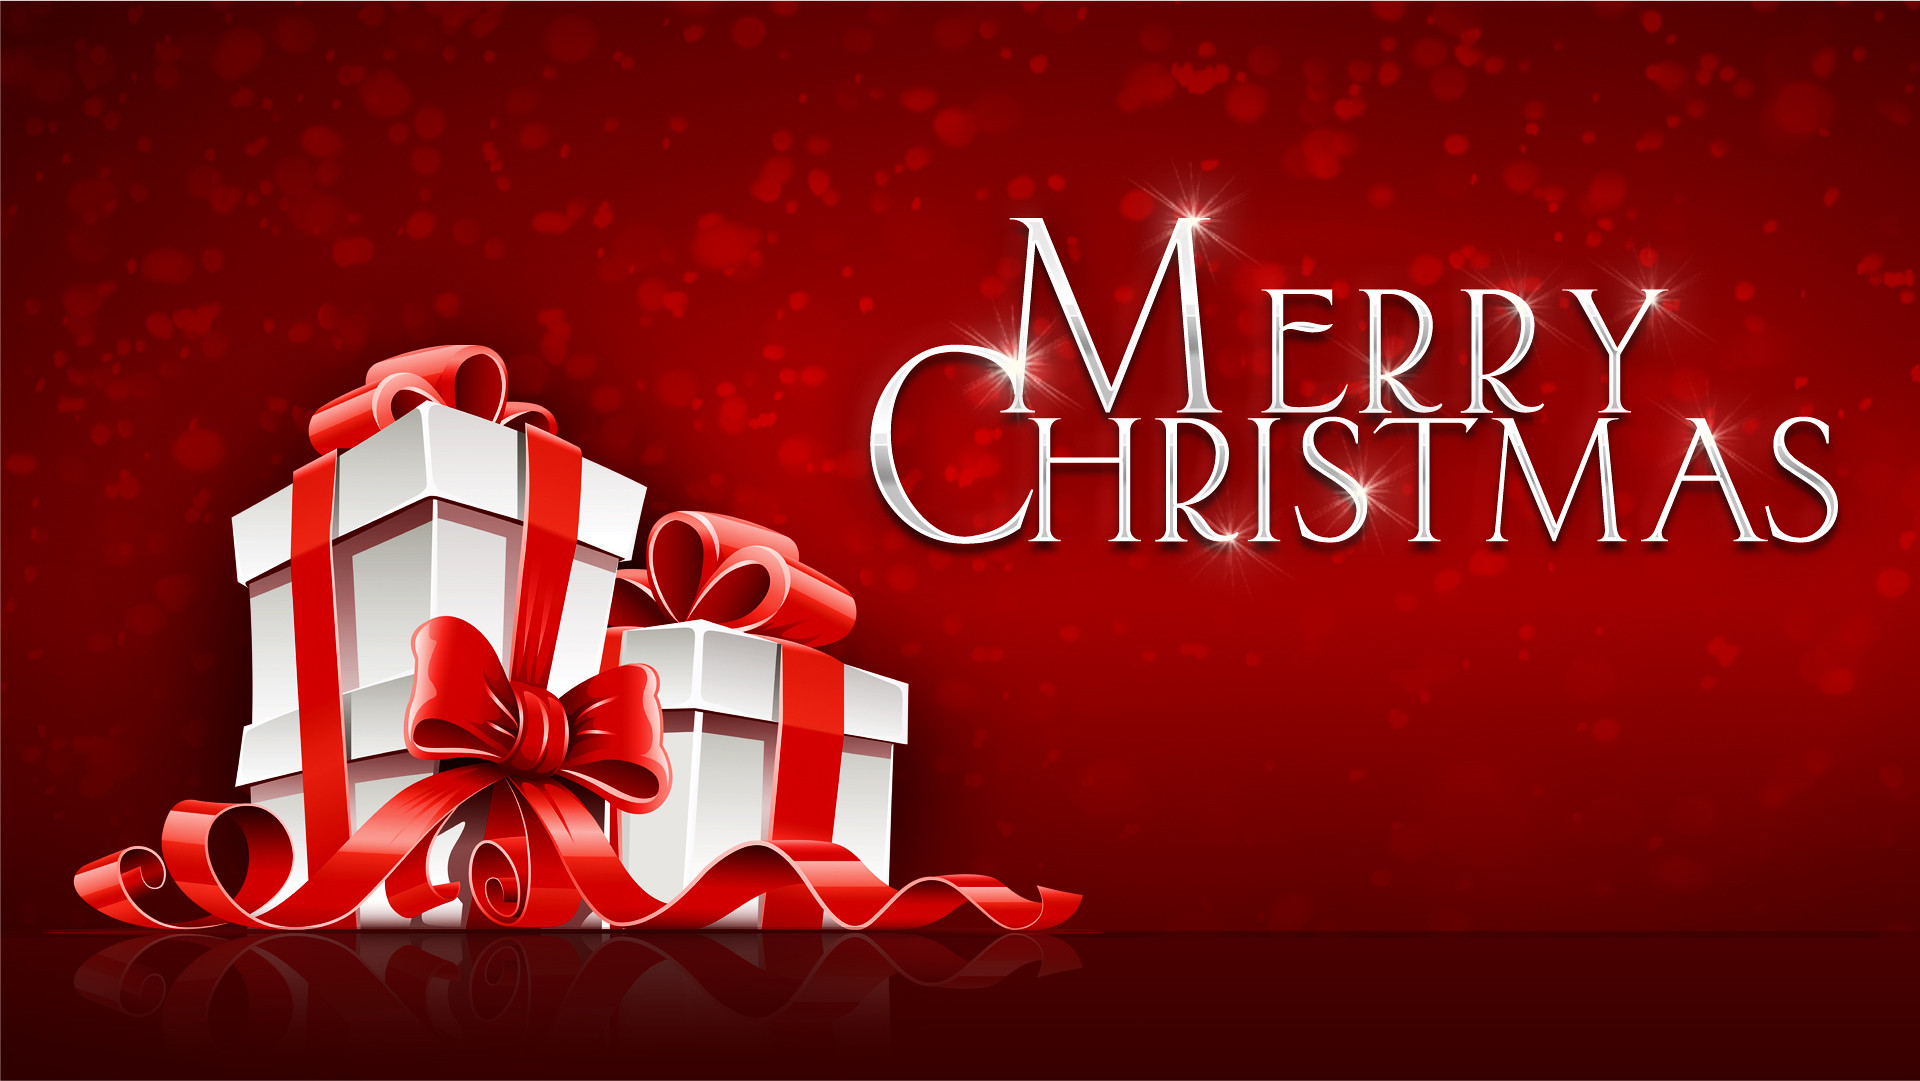 Merry Christmas Images Hd.Merry Christmas 2013 Hd Wallpapers I Have A Pc I Have A Pc